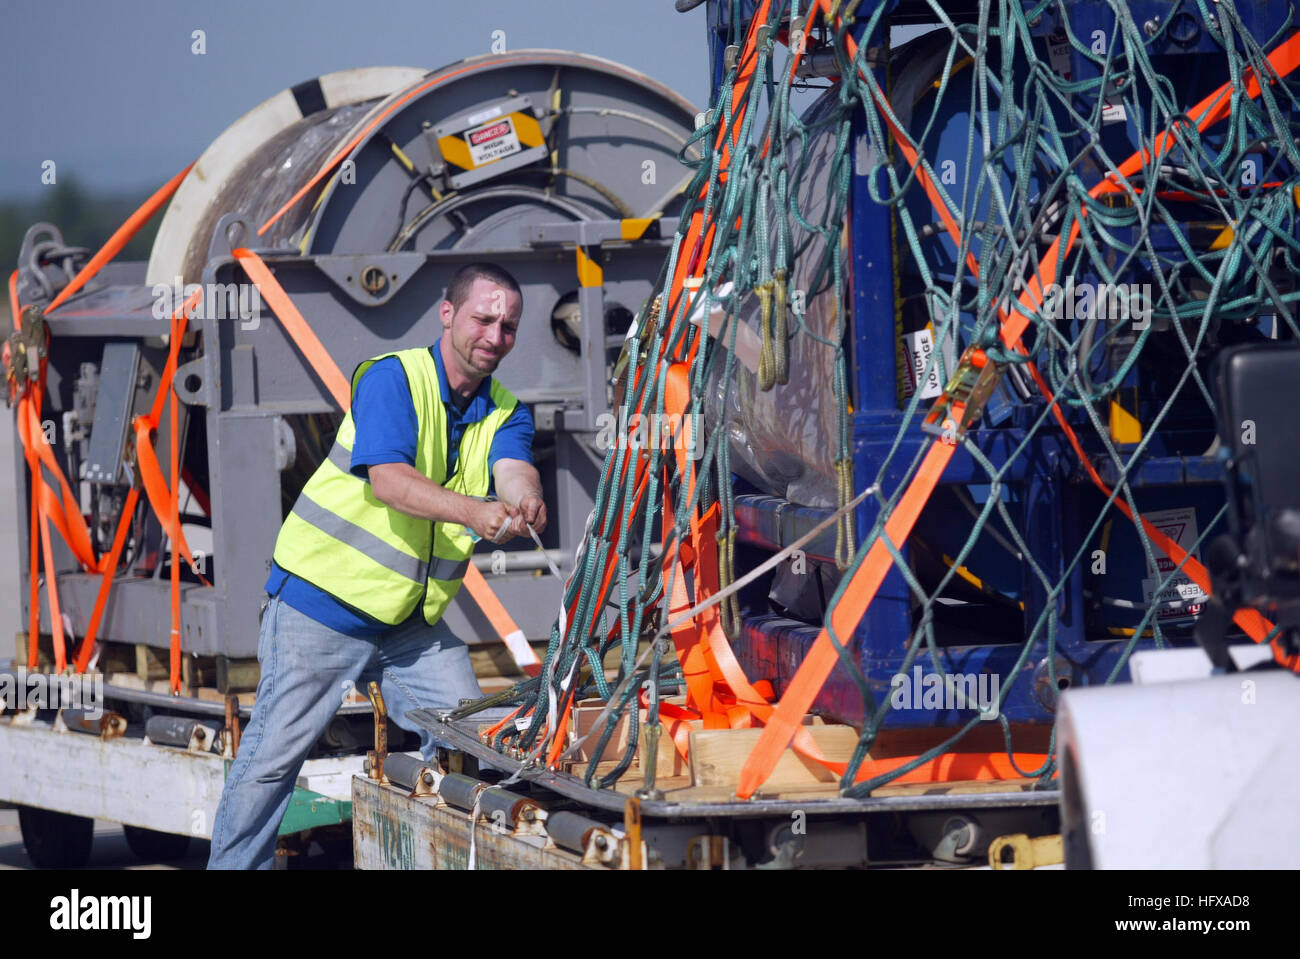 090608-N-3404S-306 DULLES, Va. (June 8, 2009)  Kevin Pollard ties down a 15,000-pound undersea cable for transportation - Stock Image